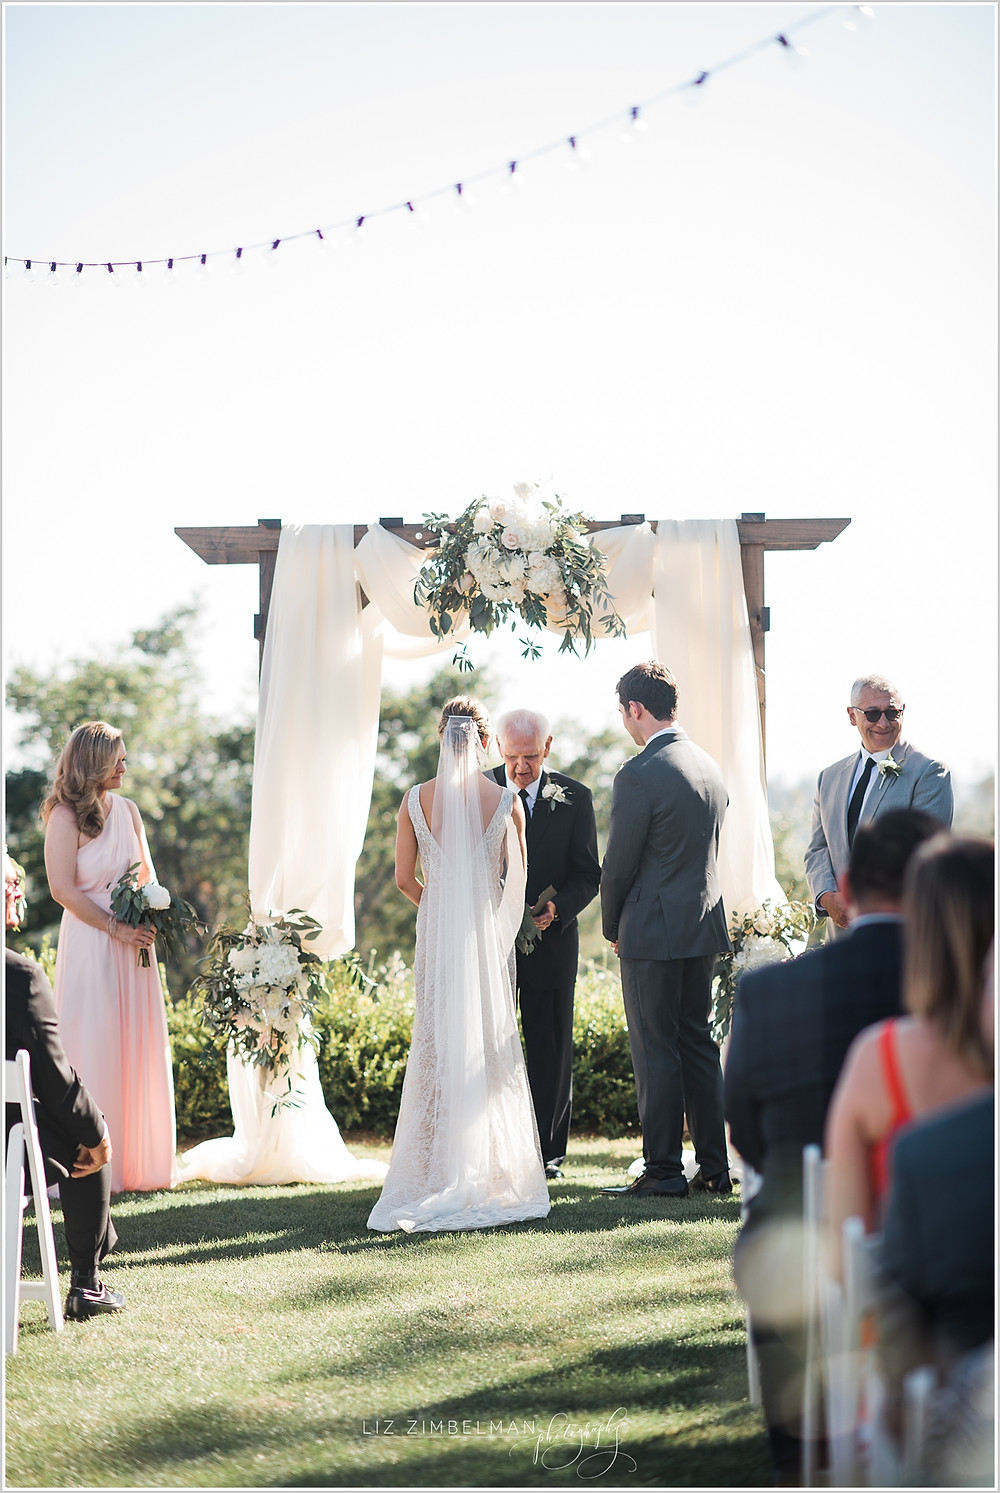 Ceremony altar with wedding arch